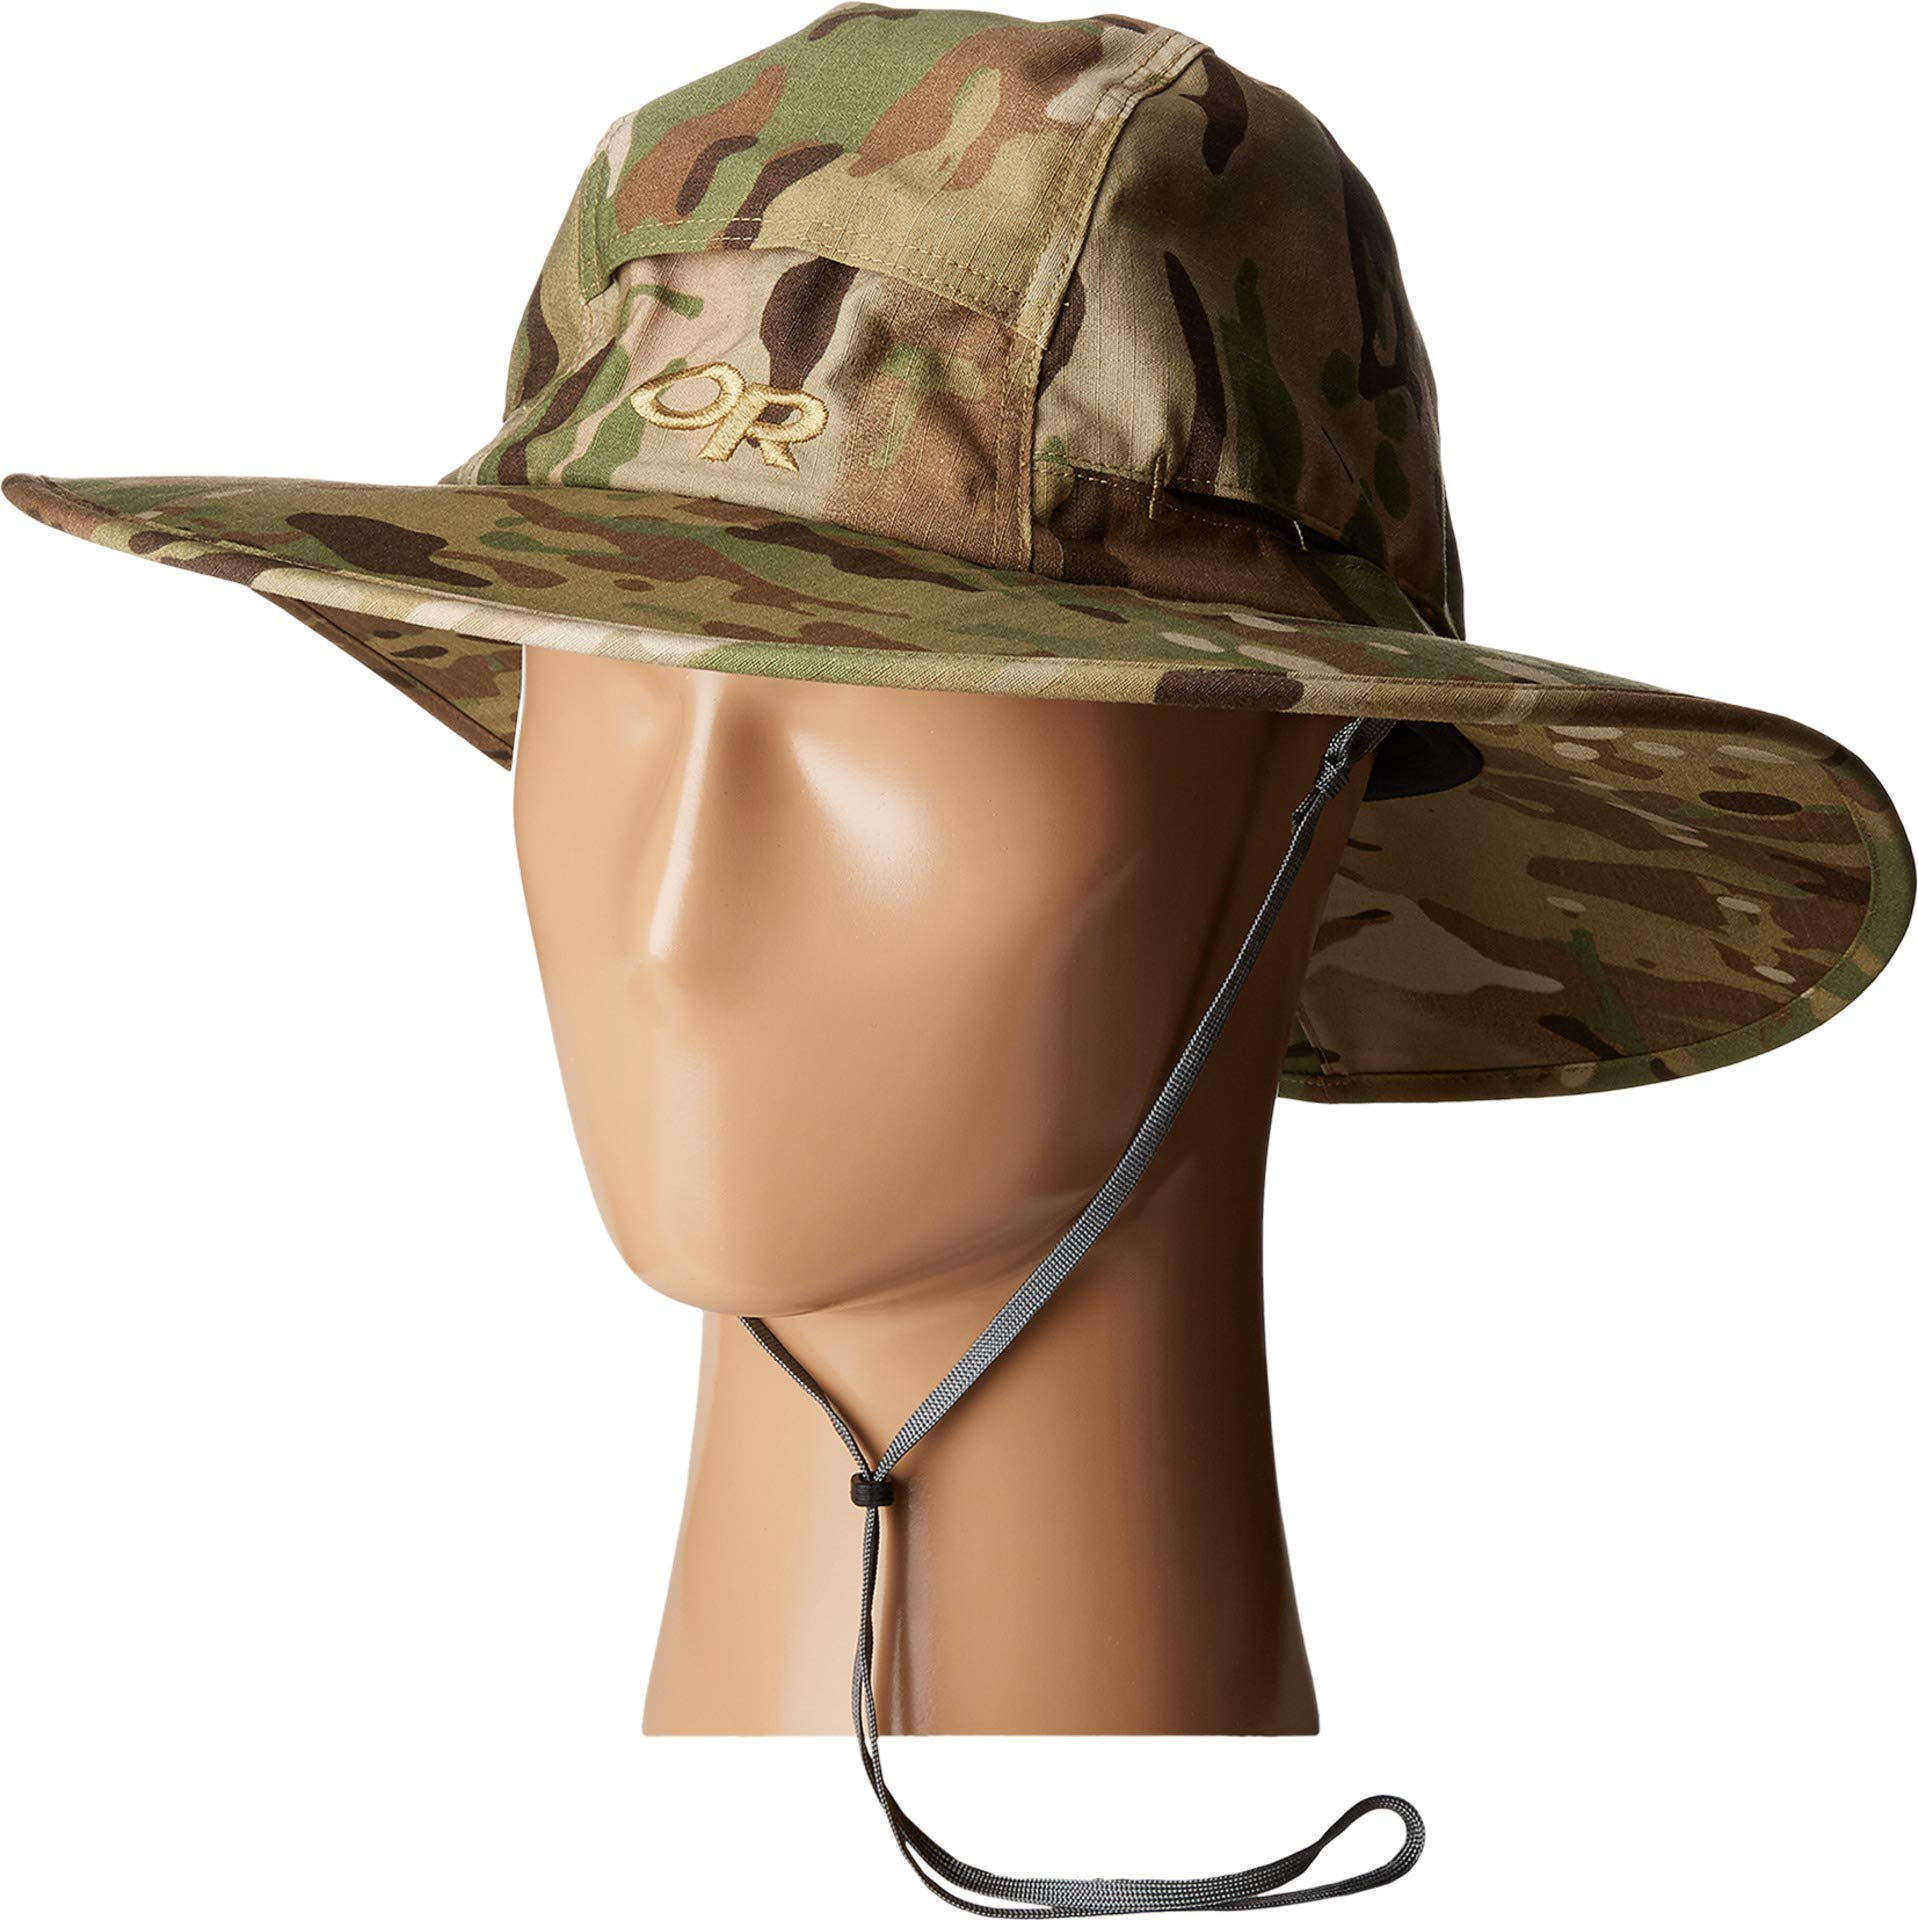 89a839ae205bcc Details about Outdoor Research Sombriolet Sun Hat Camo, Multicam, Large